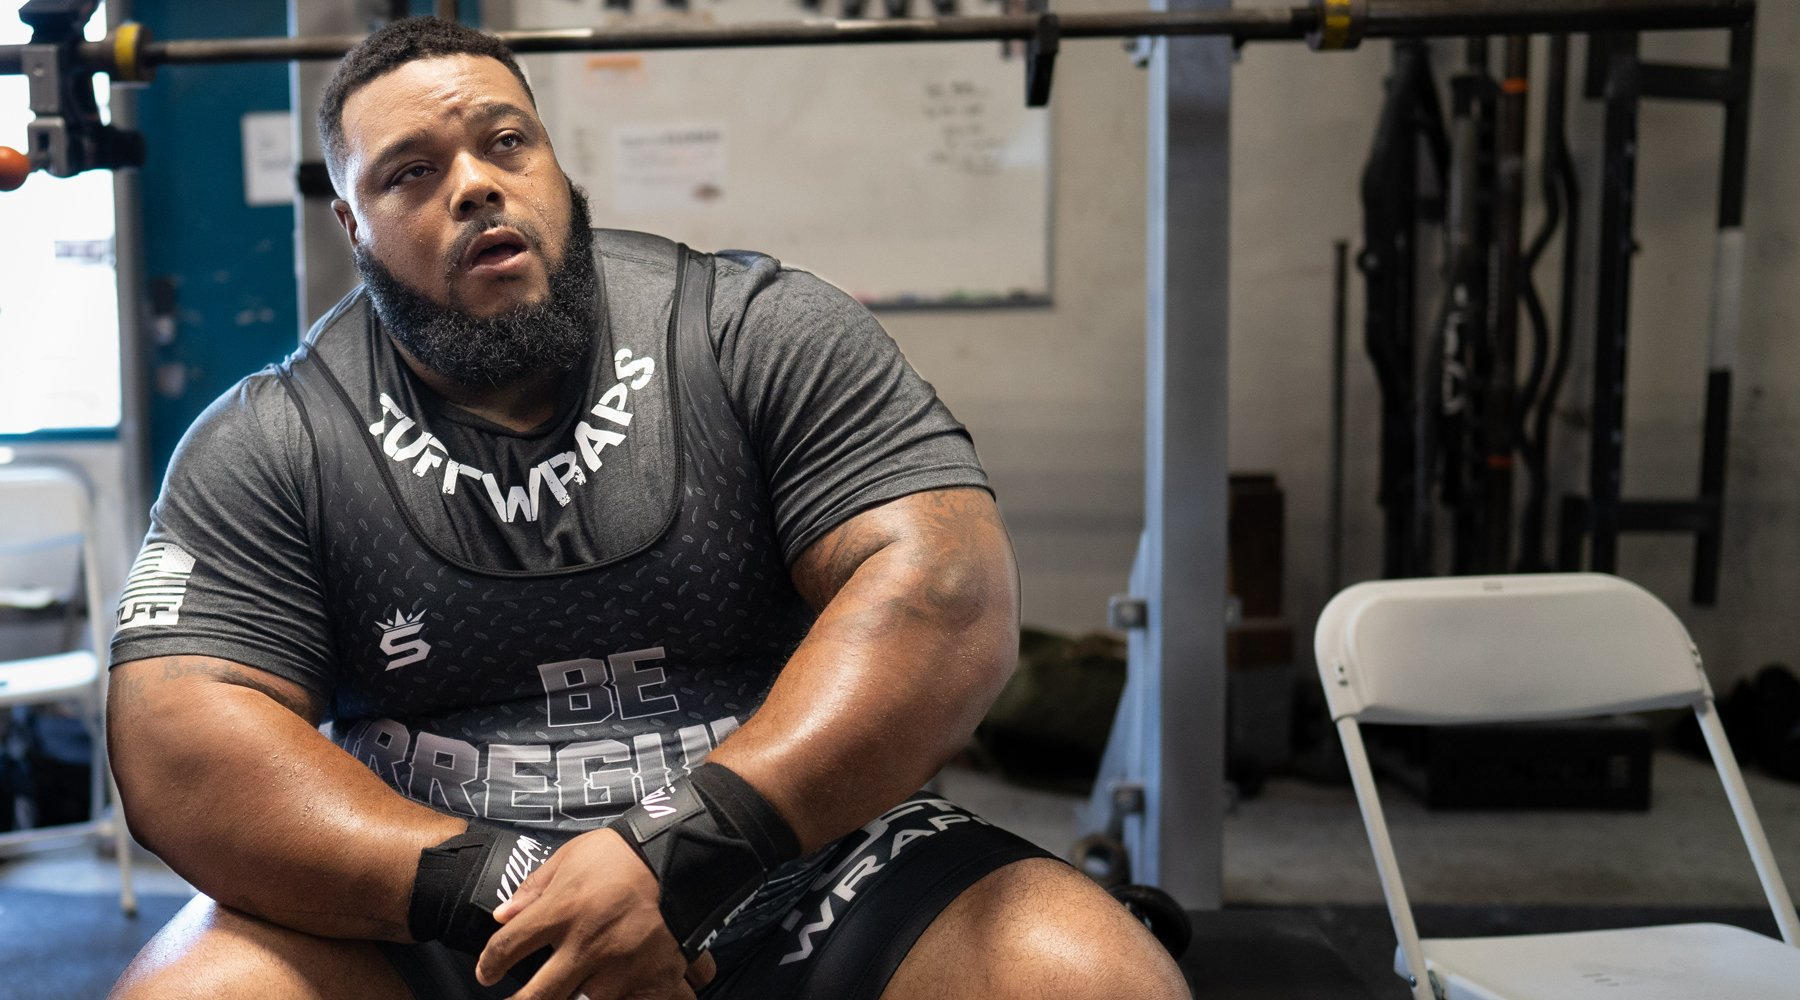 VIDEO: Julius Maddox sets new World Bench Press Record (739.6 lbs / 335.5kg)